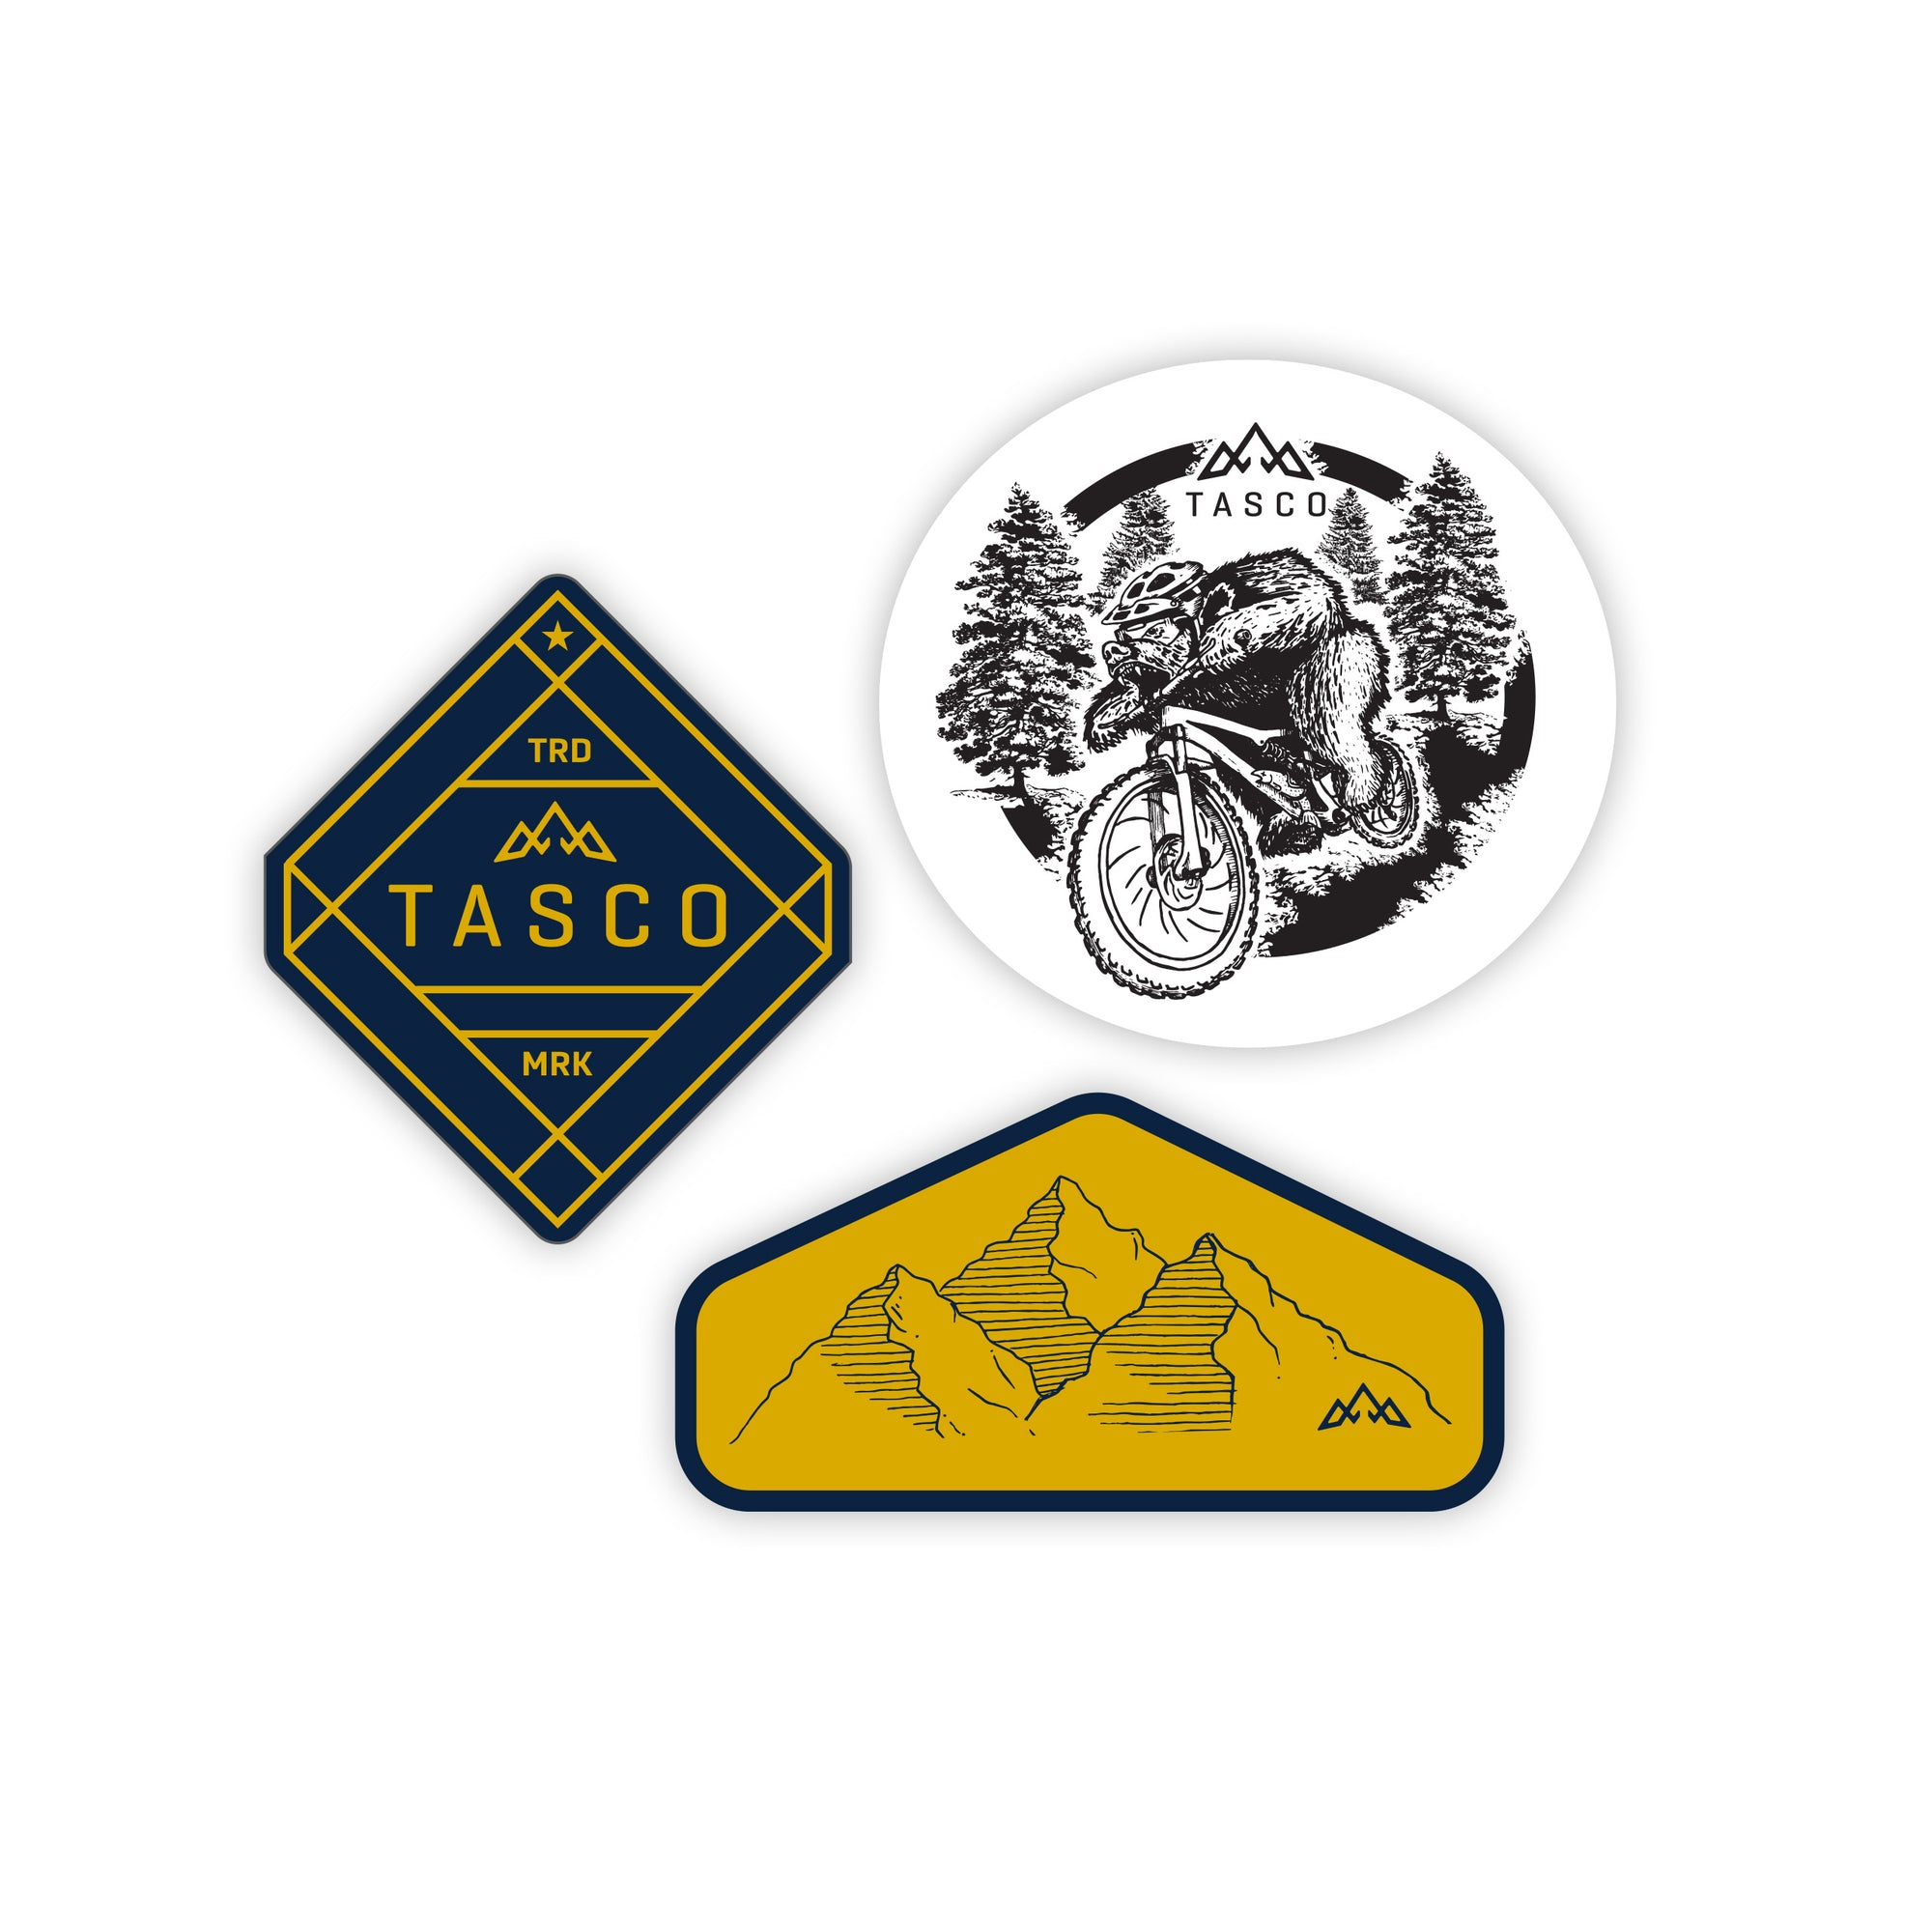 TASCO Patch Set - MTB Lifestyle | TASCO MTB